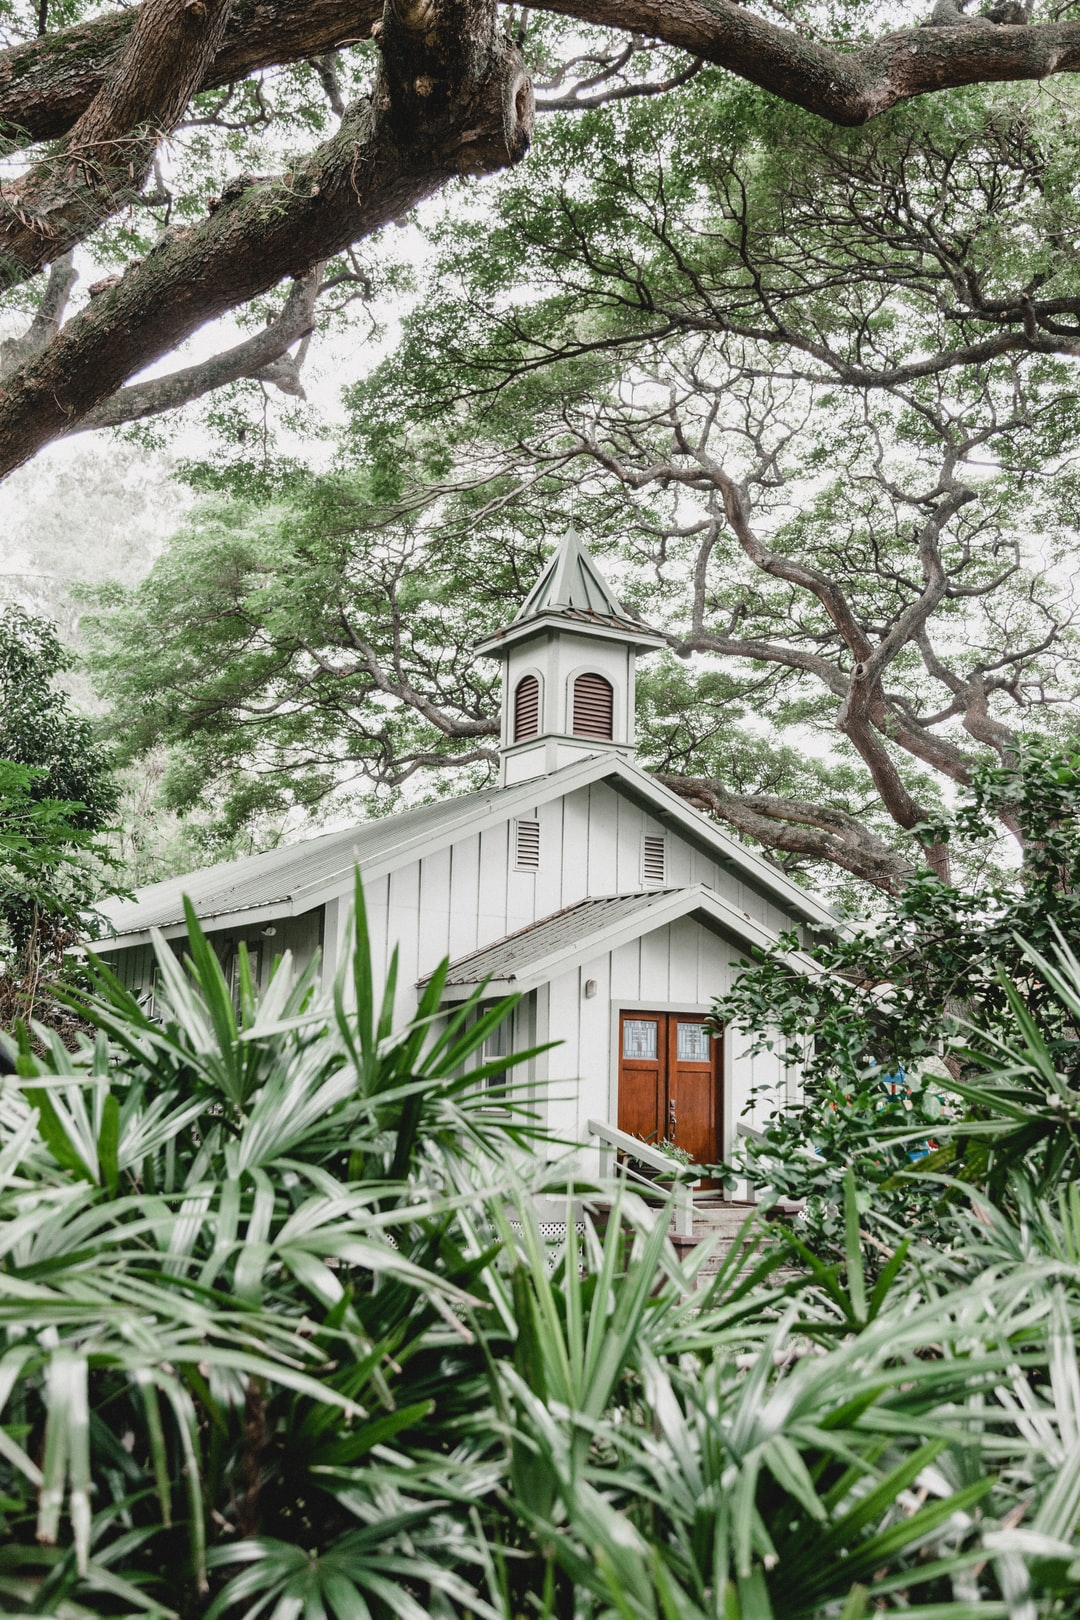 Probably the prettiest pre-school possible? This gorgeous chapel is nestled amongst tropical trees and leaves right next to the coast of Kapalua, Hawaii. It looks like something out of a dream but the gardens were full of colourful play equipment. What a wonderful place to grow up!